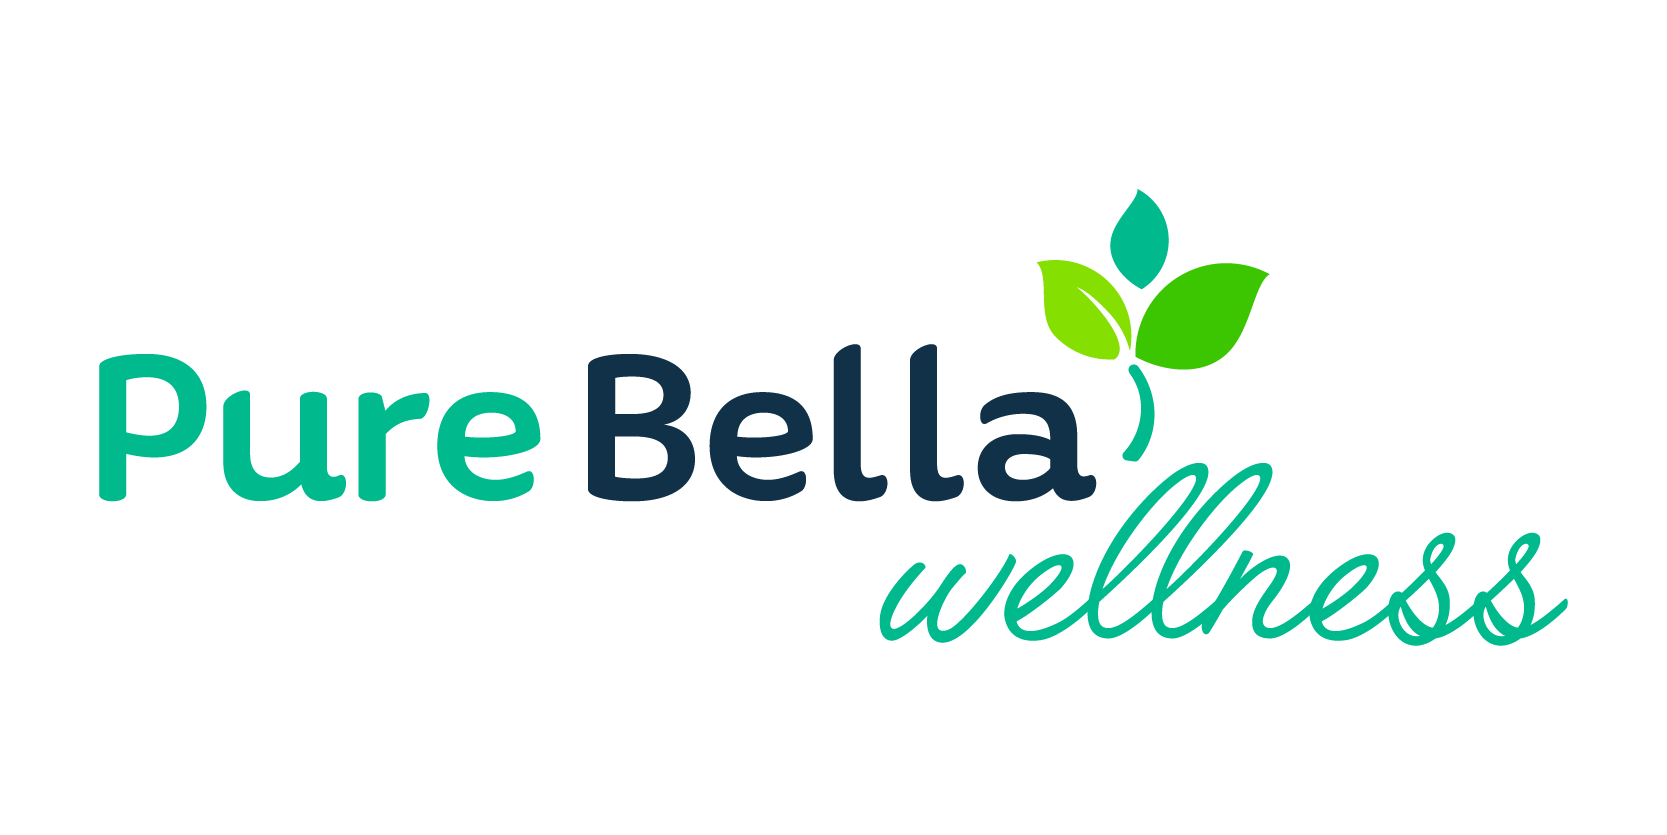 Pure Bella Wellness